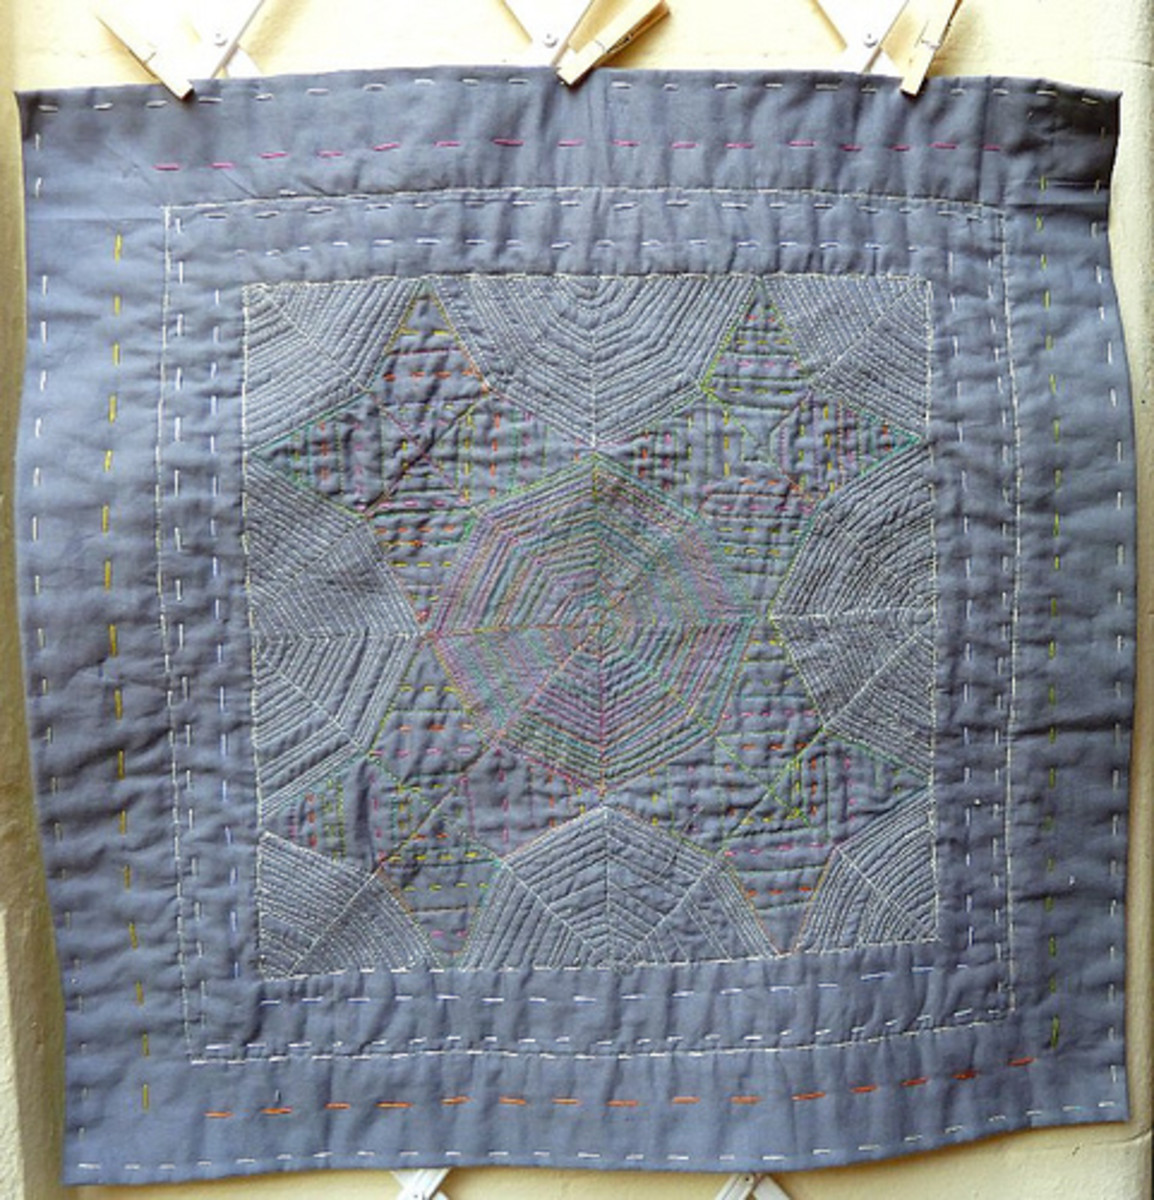 This is actually the back of a quilt that is not whole cloth, but the simple running stitches show that you do not need elaborate patterns or fabric to make a beautiful quilt.